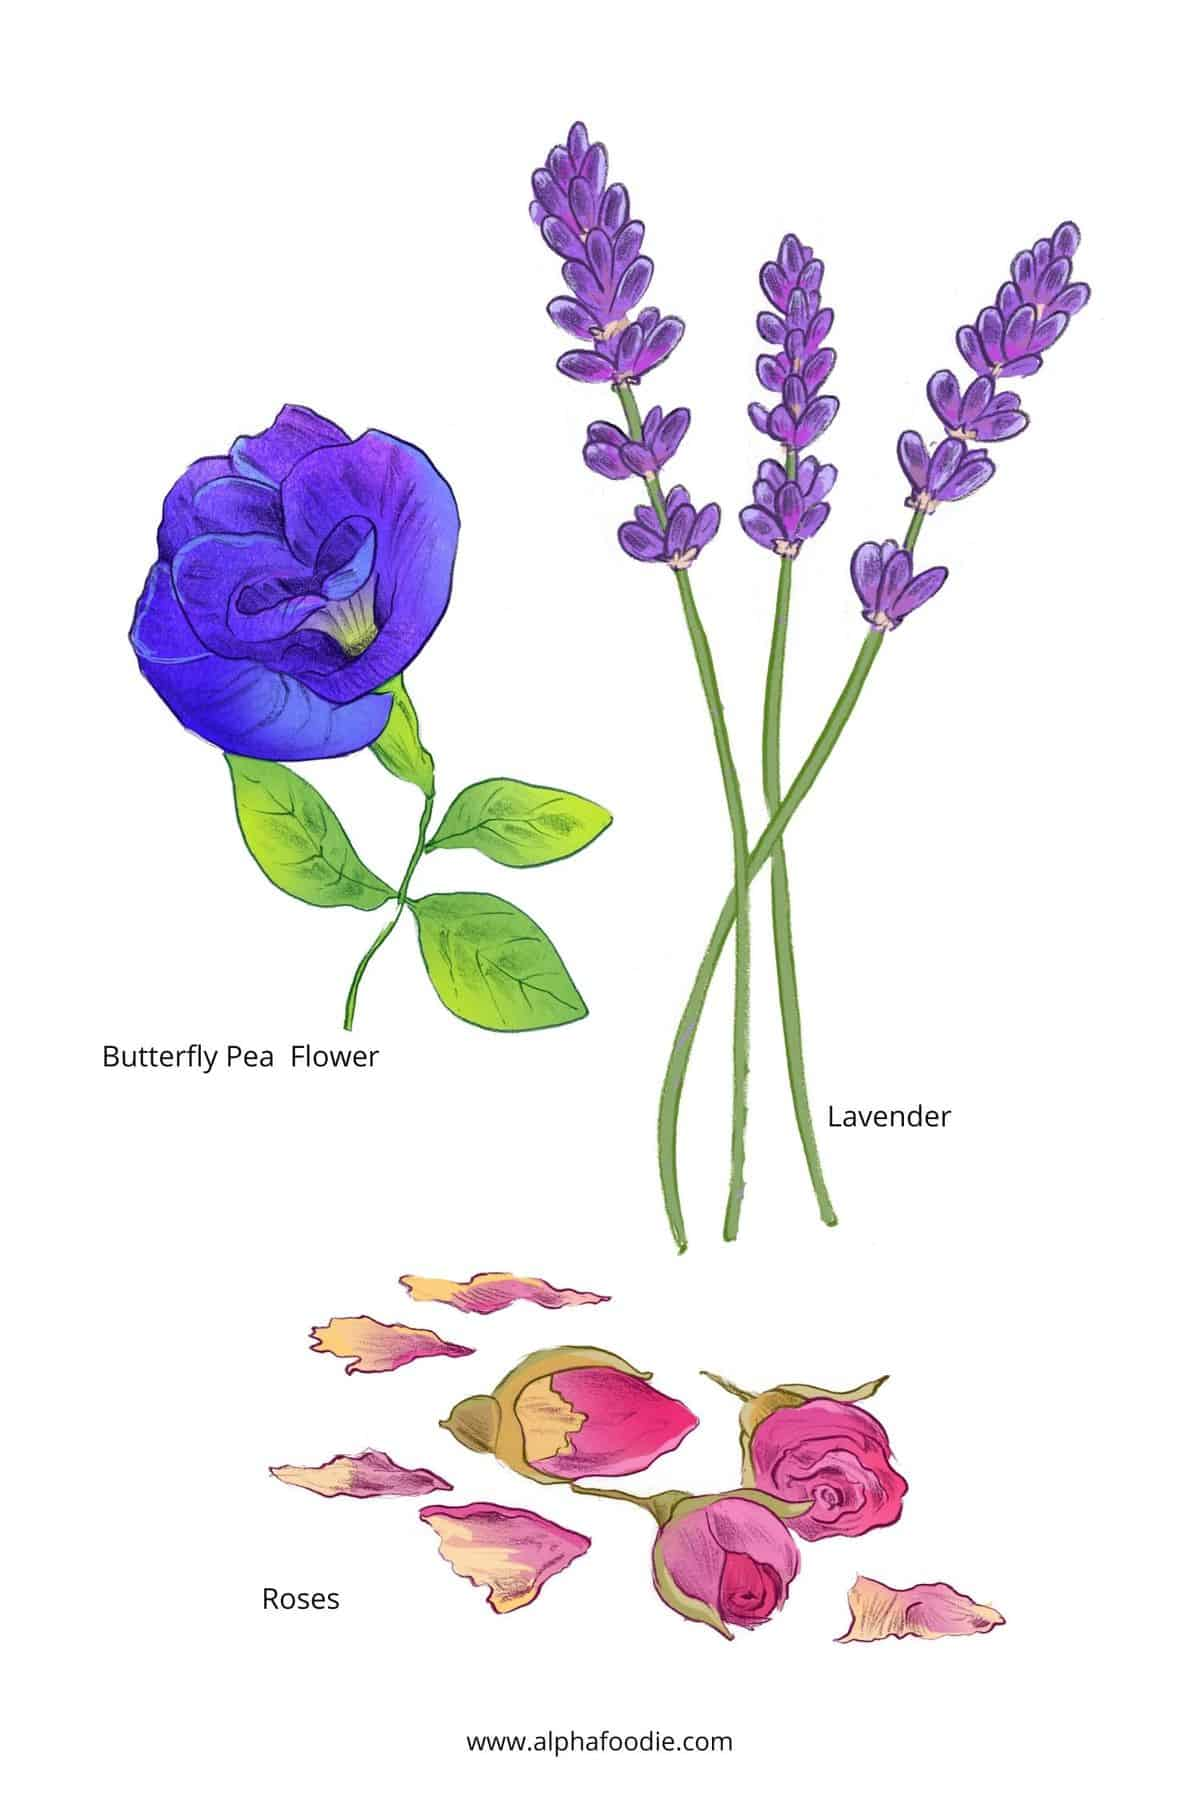 Drawings of flowers to make Flavored Water